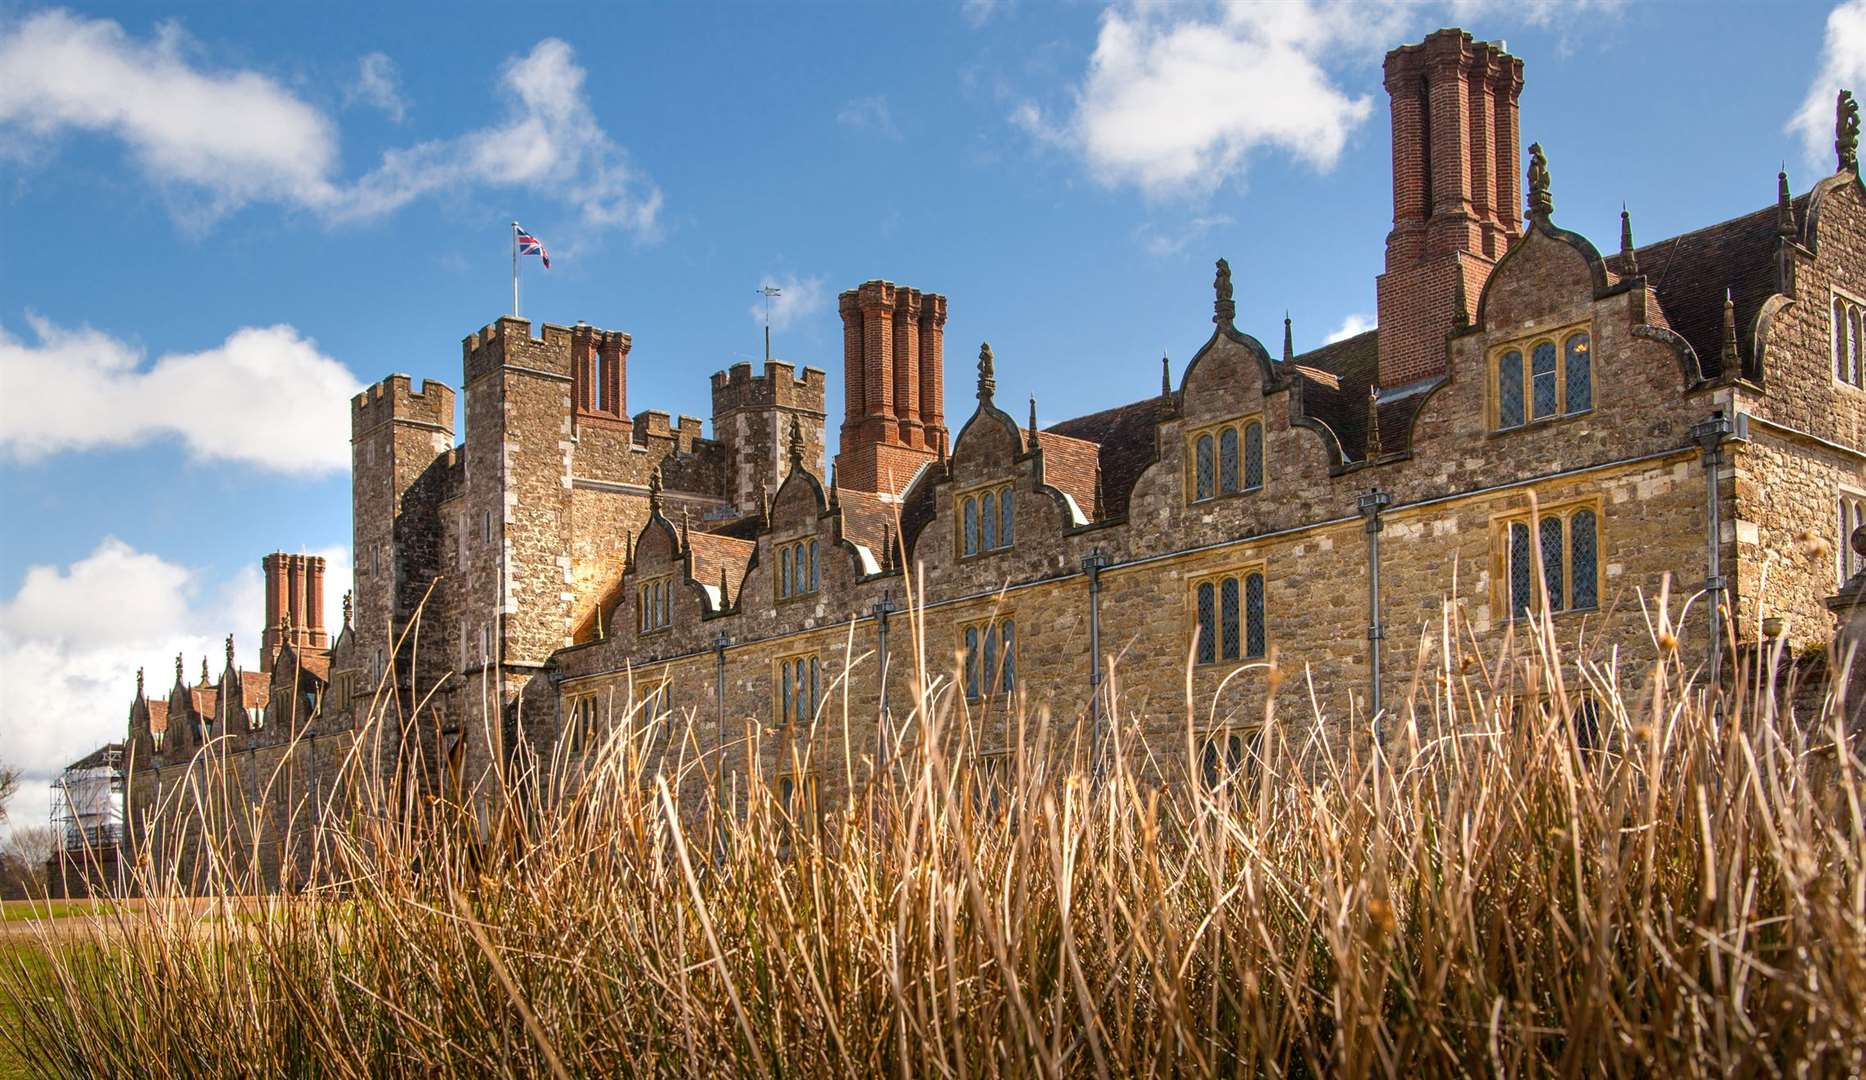 Knole was the childhood home of Vita Sackville-West who went on to live at Sissinghurst Castle